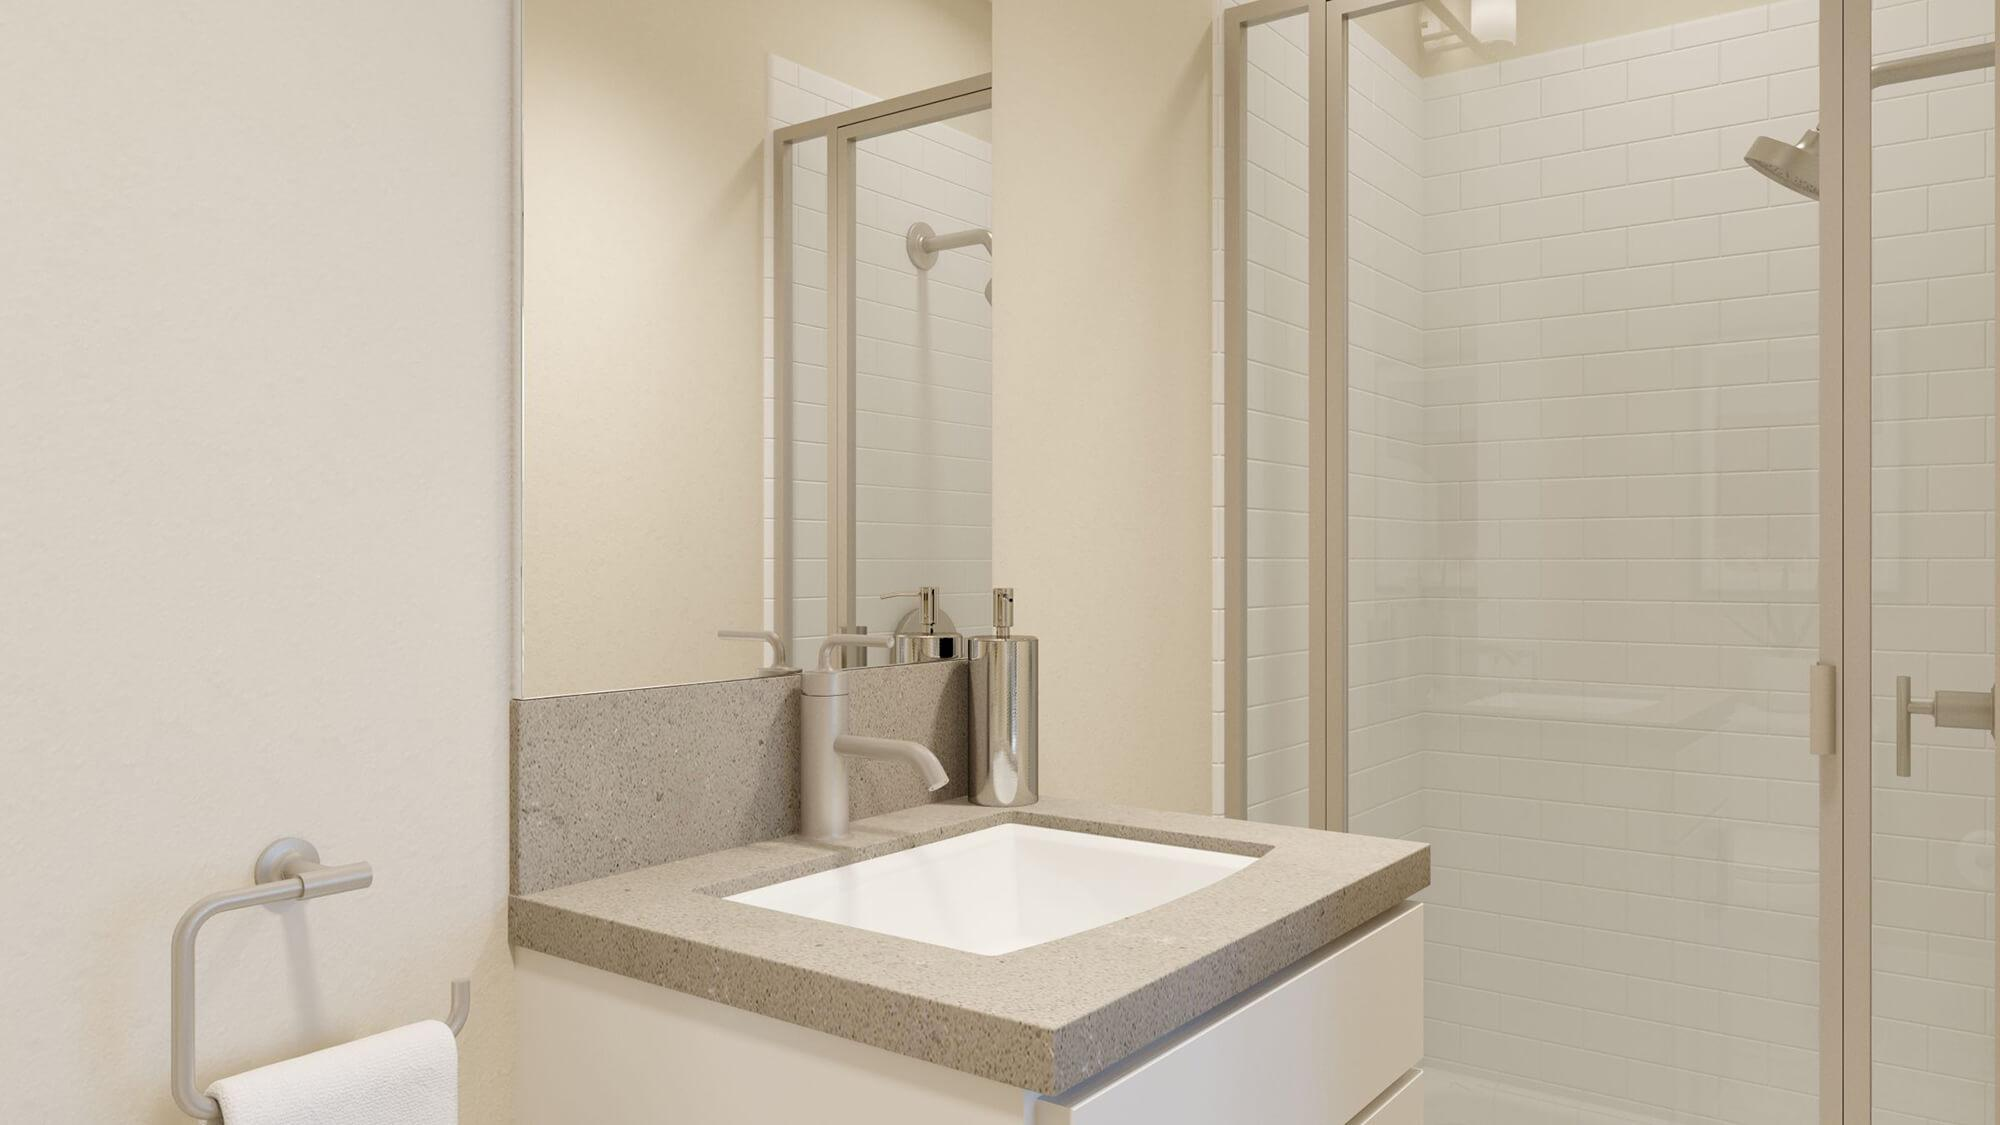 Bathroom featured in the Plan 1 By Dividend Homes in San Jose, CA